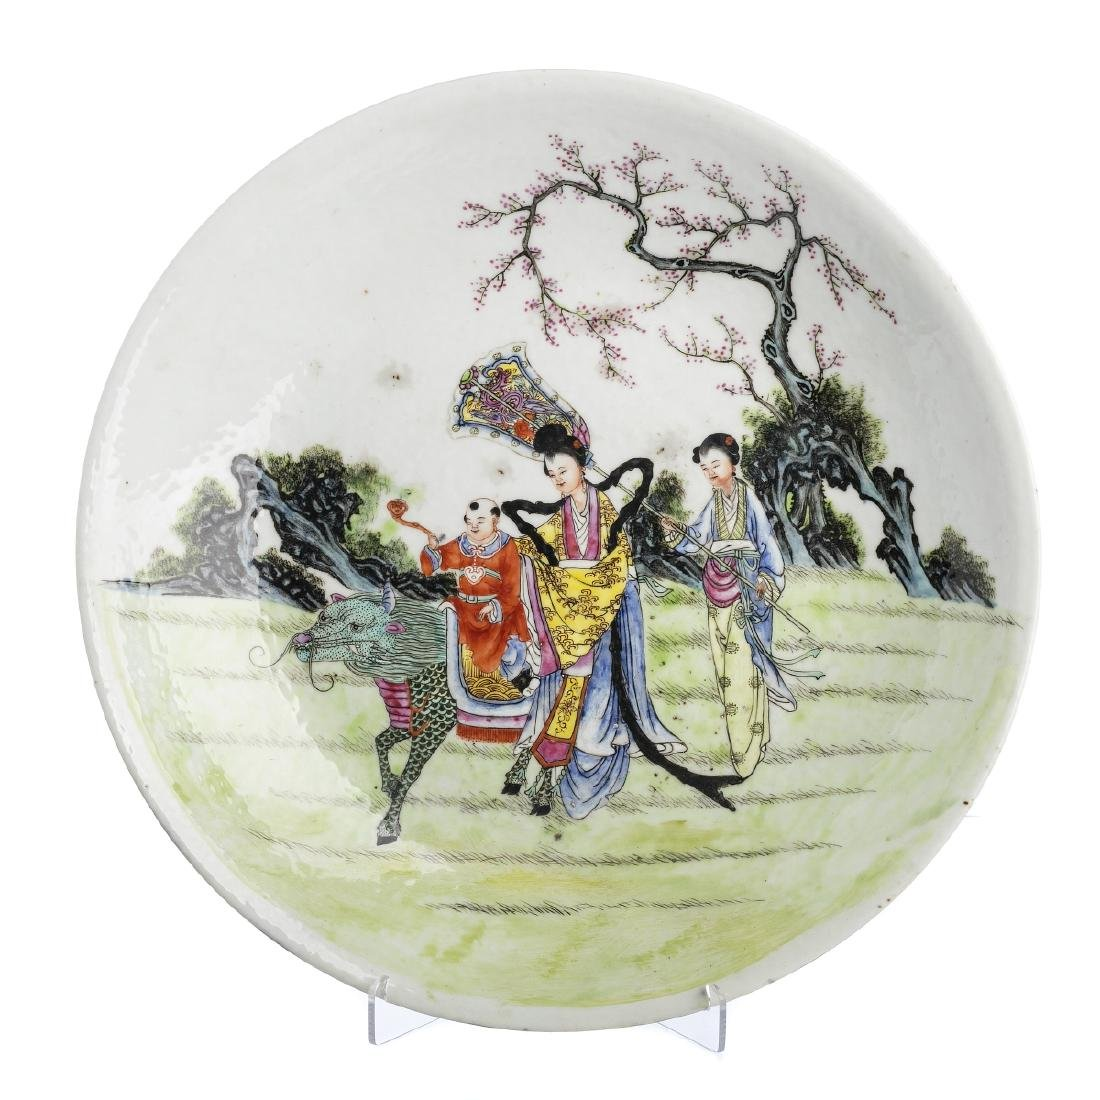 Qilin plate in Chinese porcelain